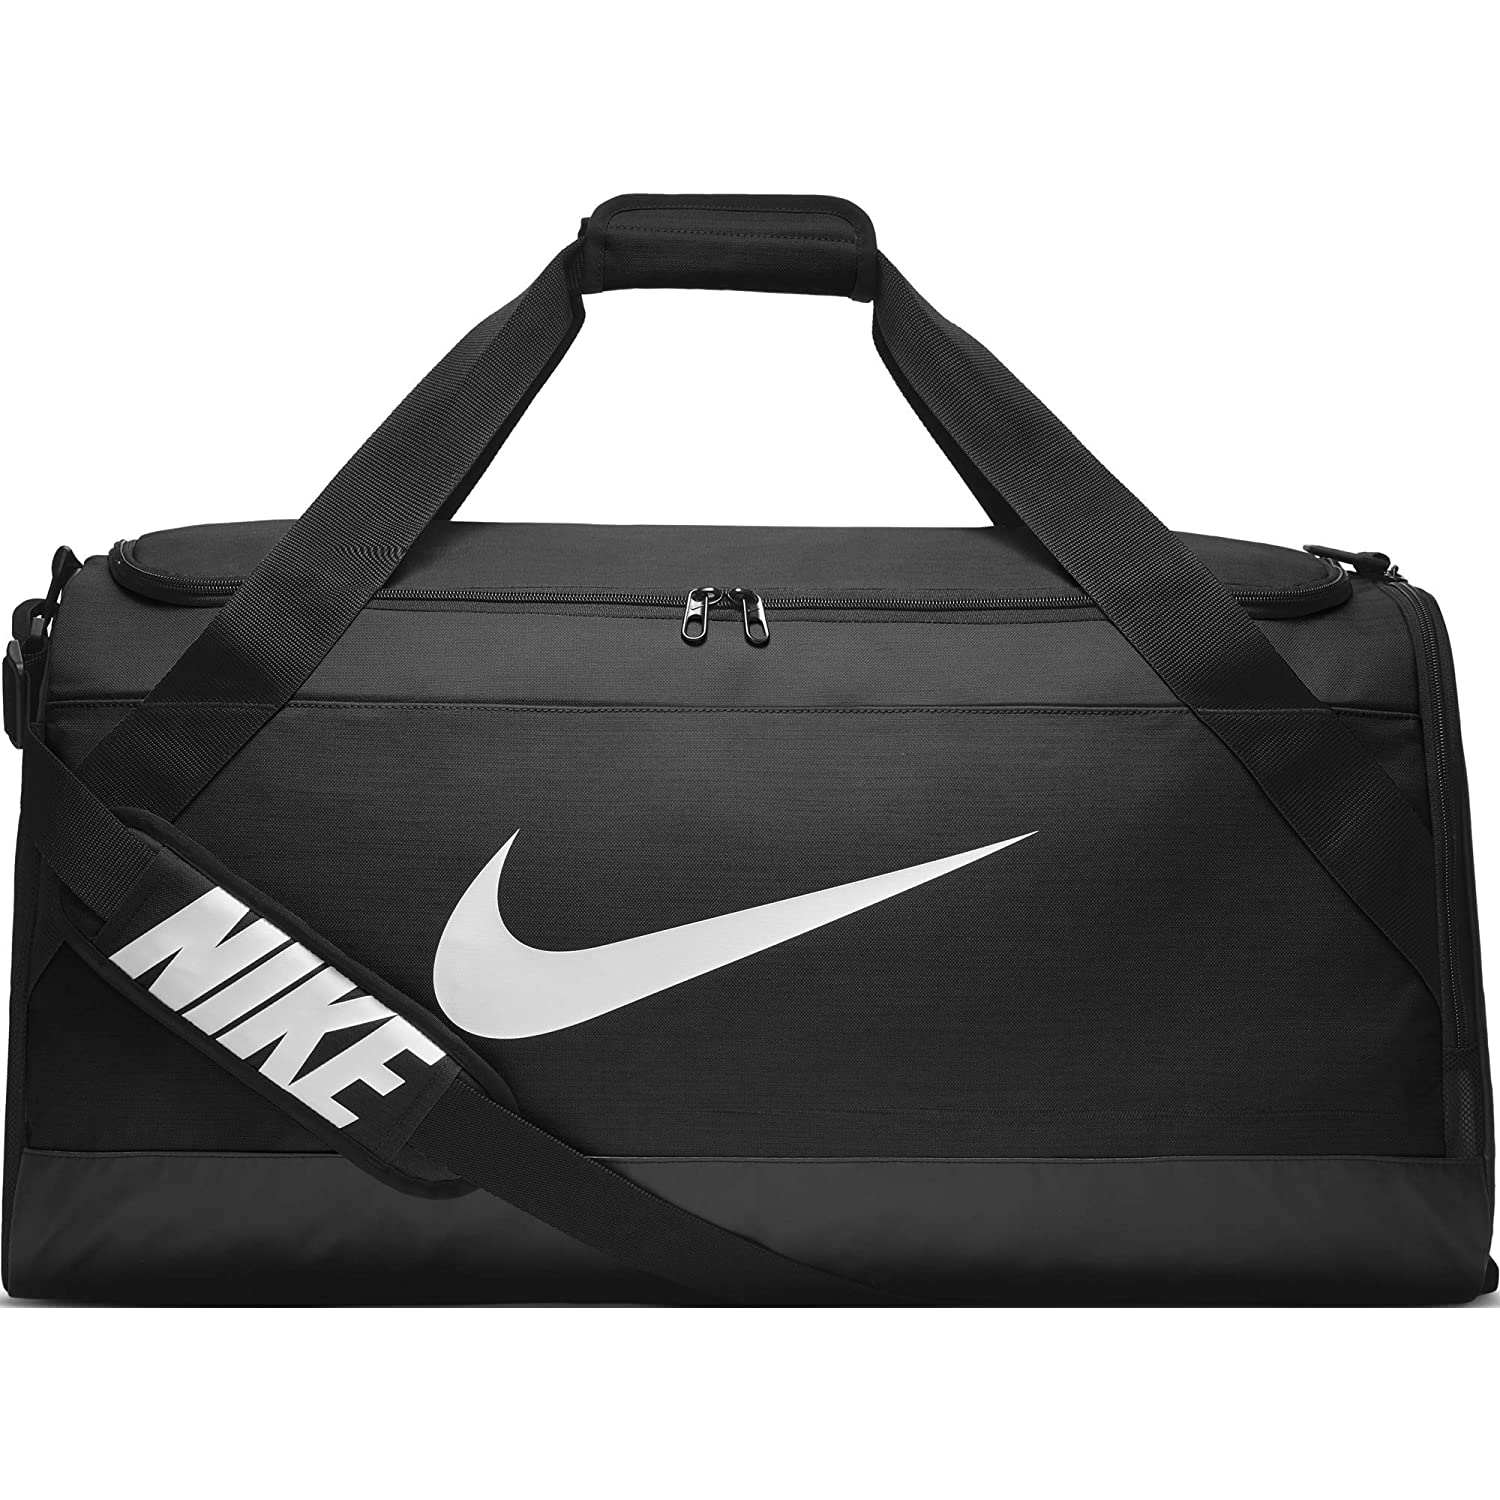 a0658a2bf5eb Amazon.com  NIKE Brasilia Training Duffel Bag